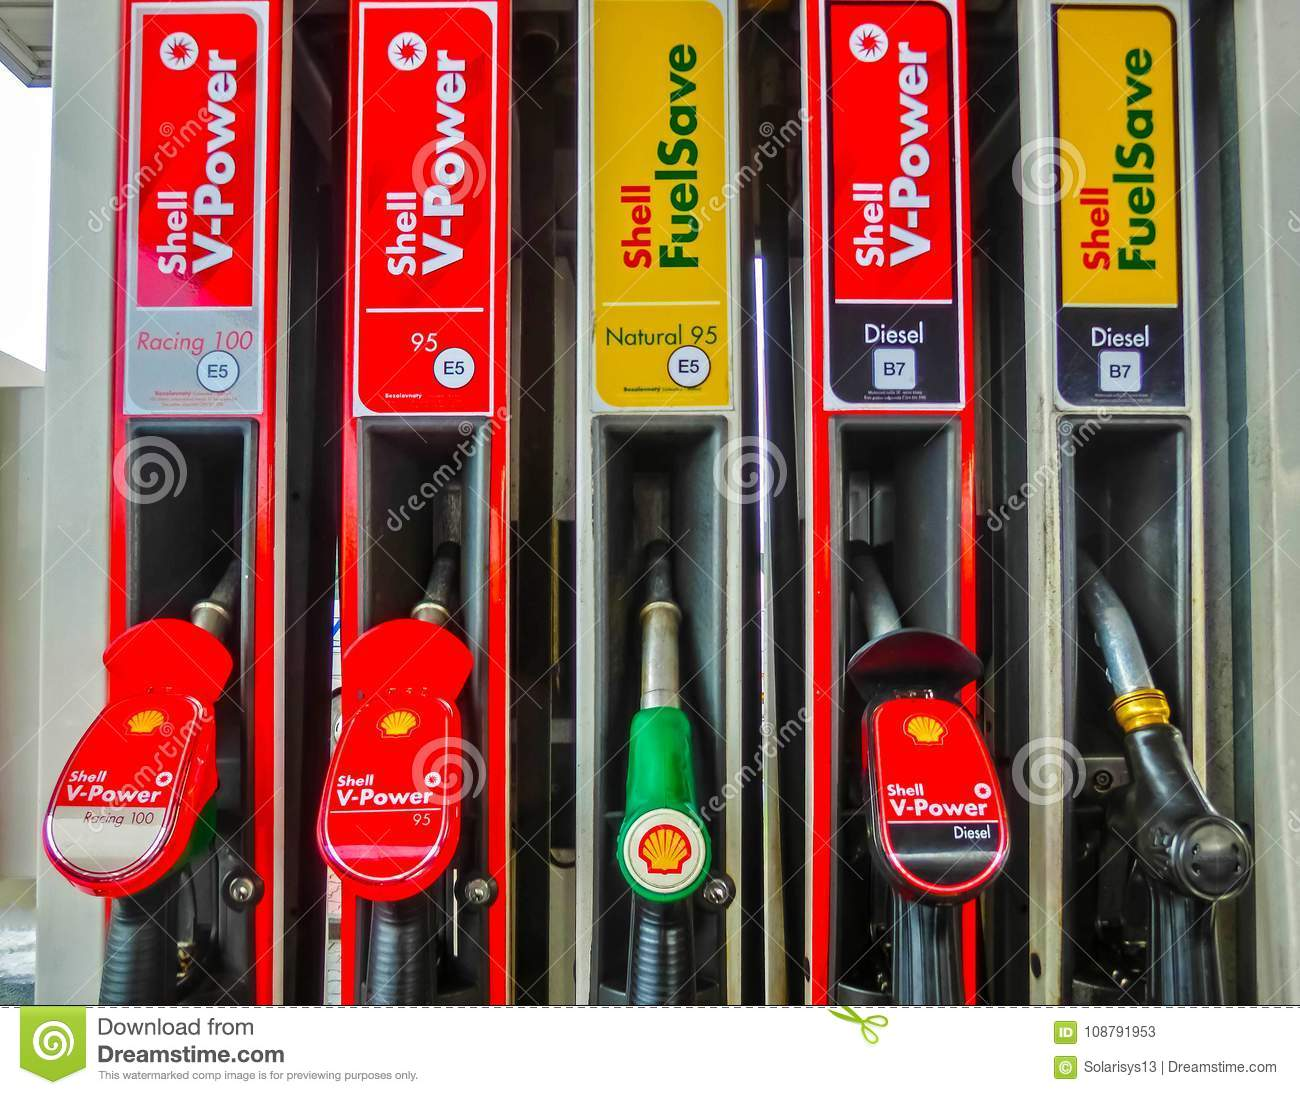 Prague, Czech Republic - January 2, 2018: Filling nozzles at a Shell gas station.